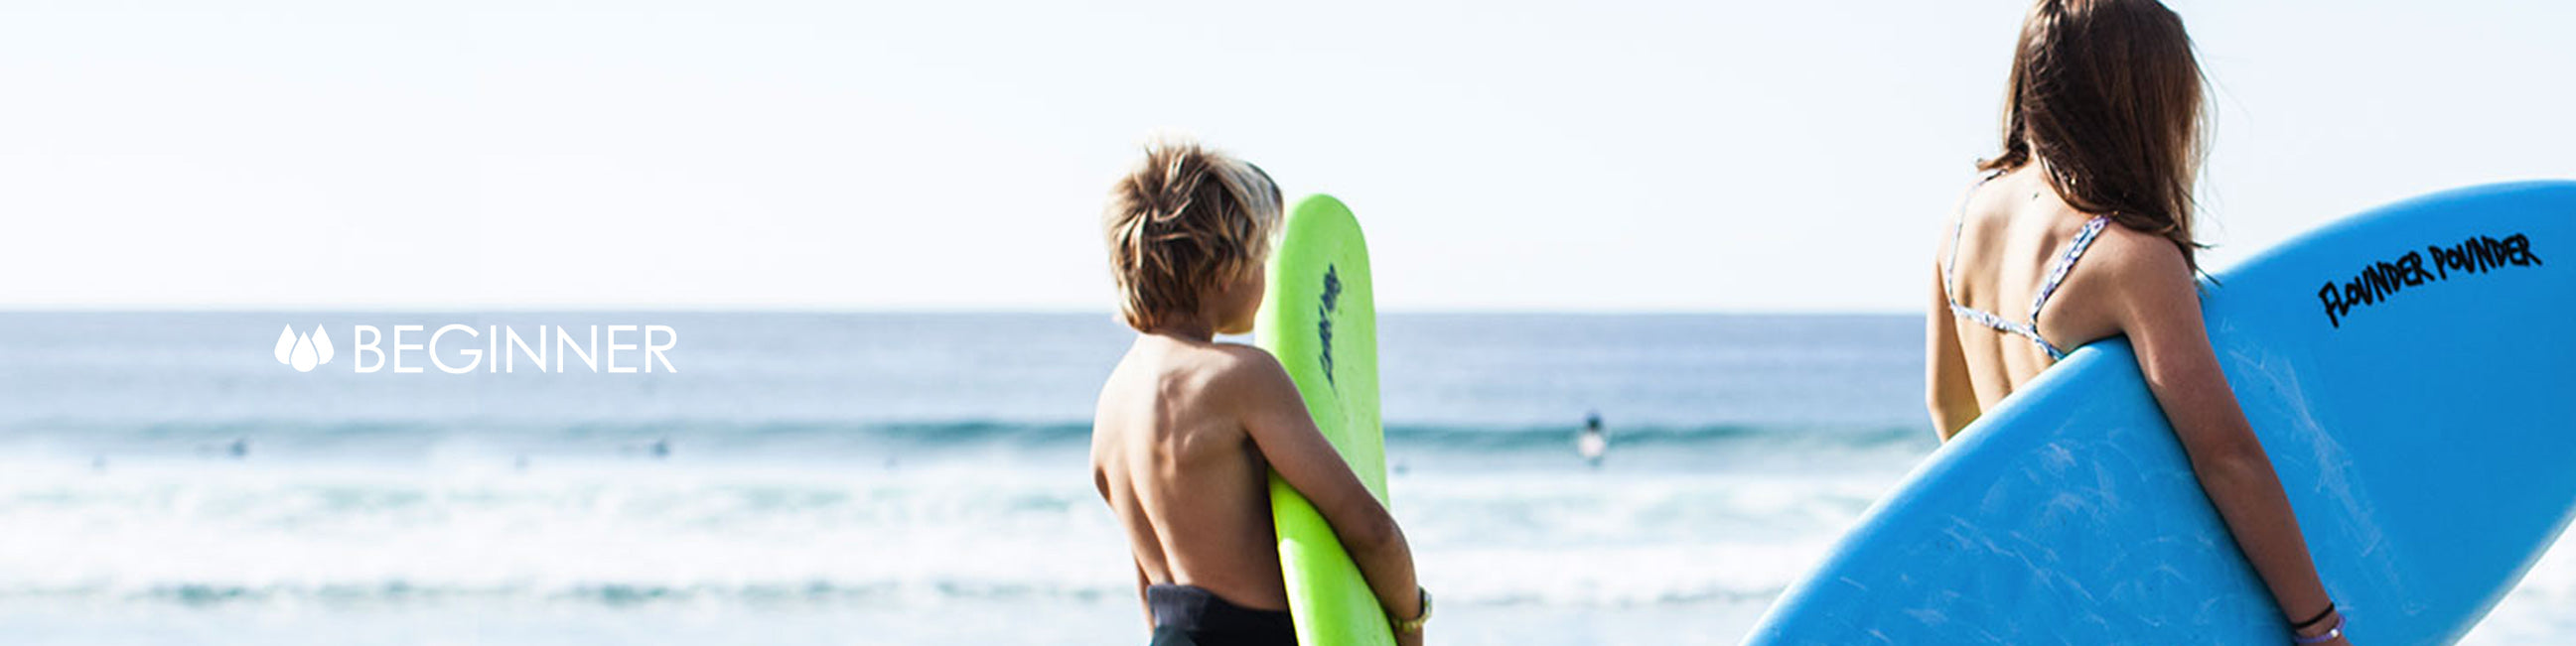 Beginner Kids Surfboards For Sale LiquidWild Surf